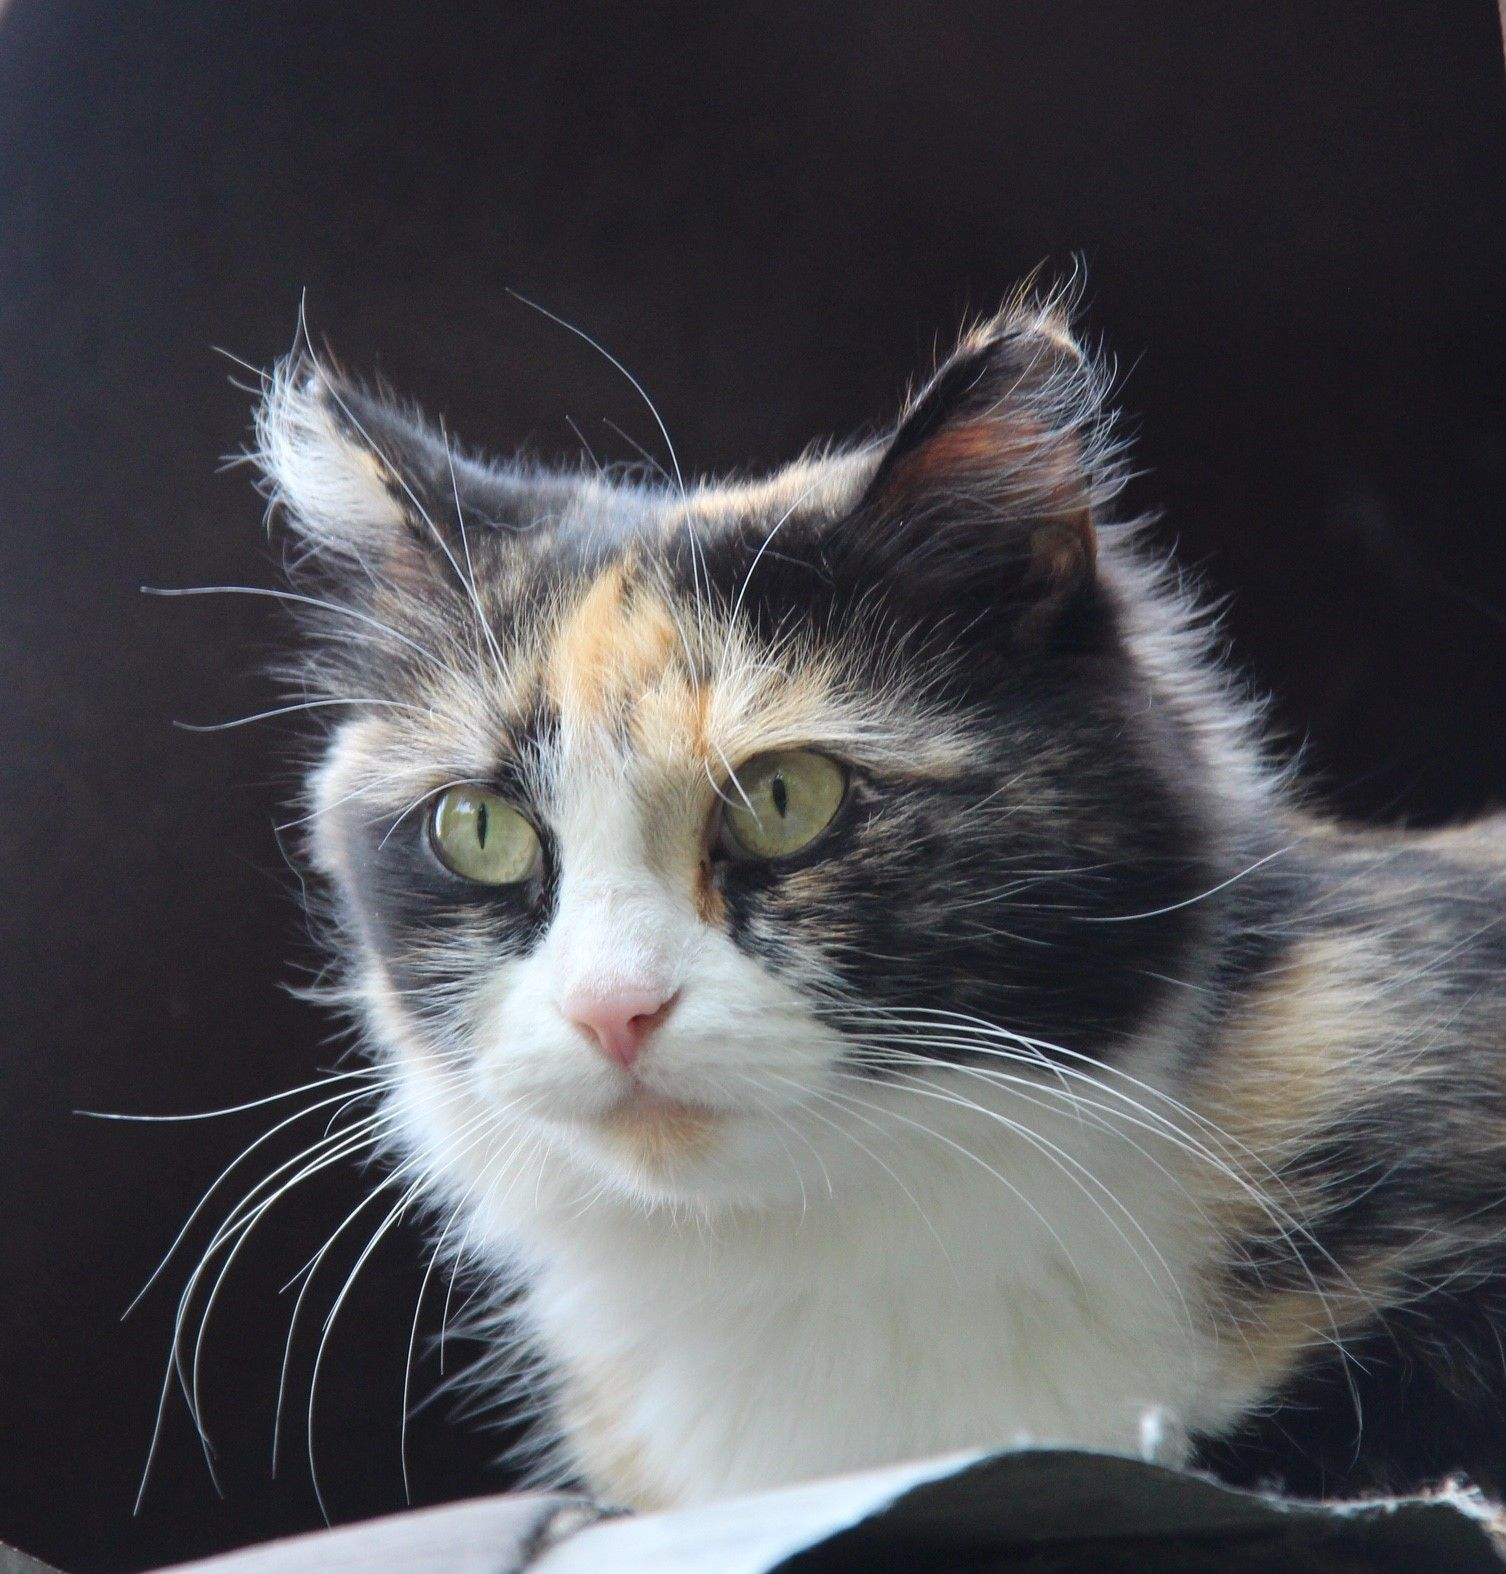 Why do cats have whiskers? And fun facts about cat's